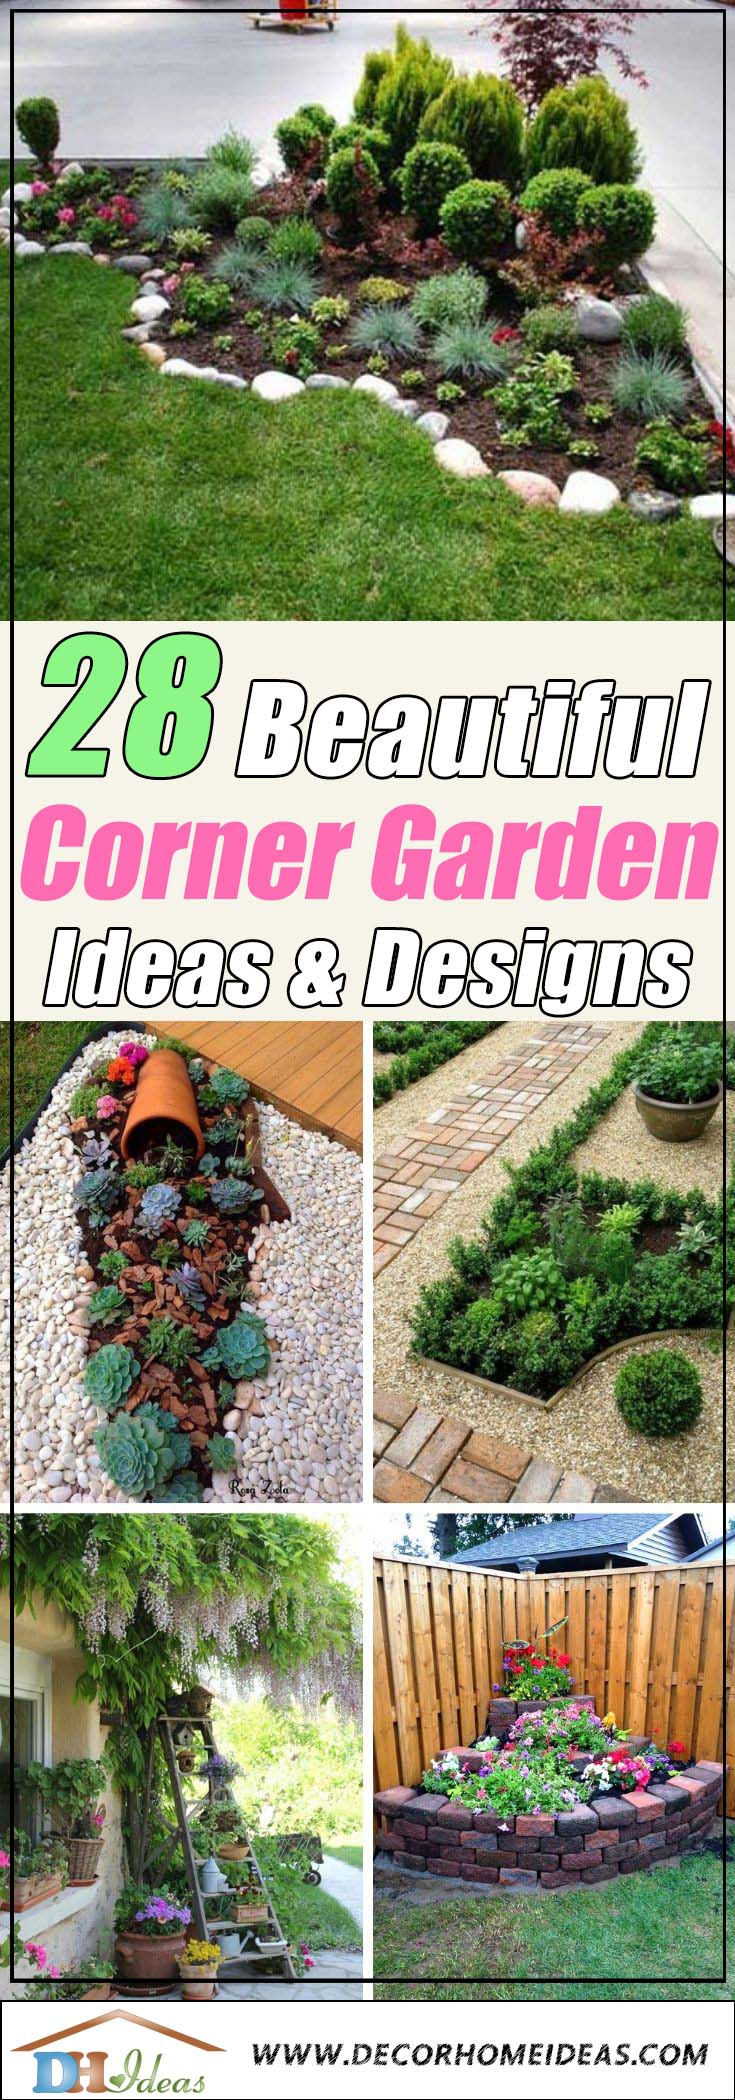 28 Beautiful Corner Garden Ideas and Designs | Decor Home ...